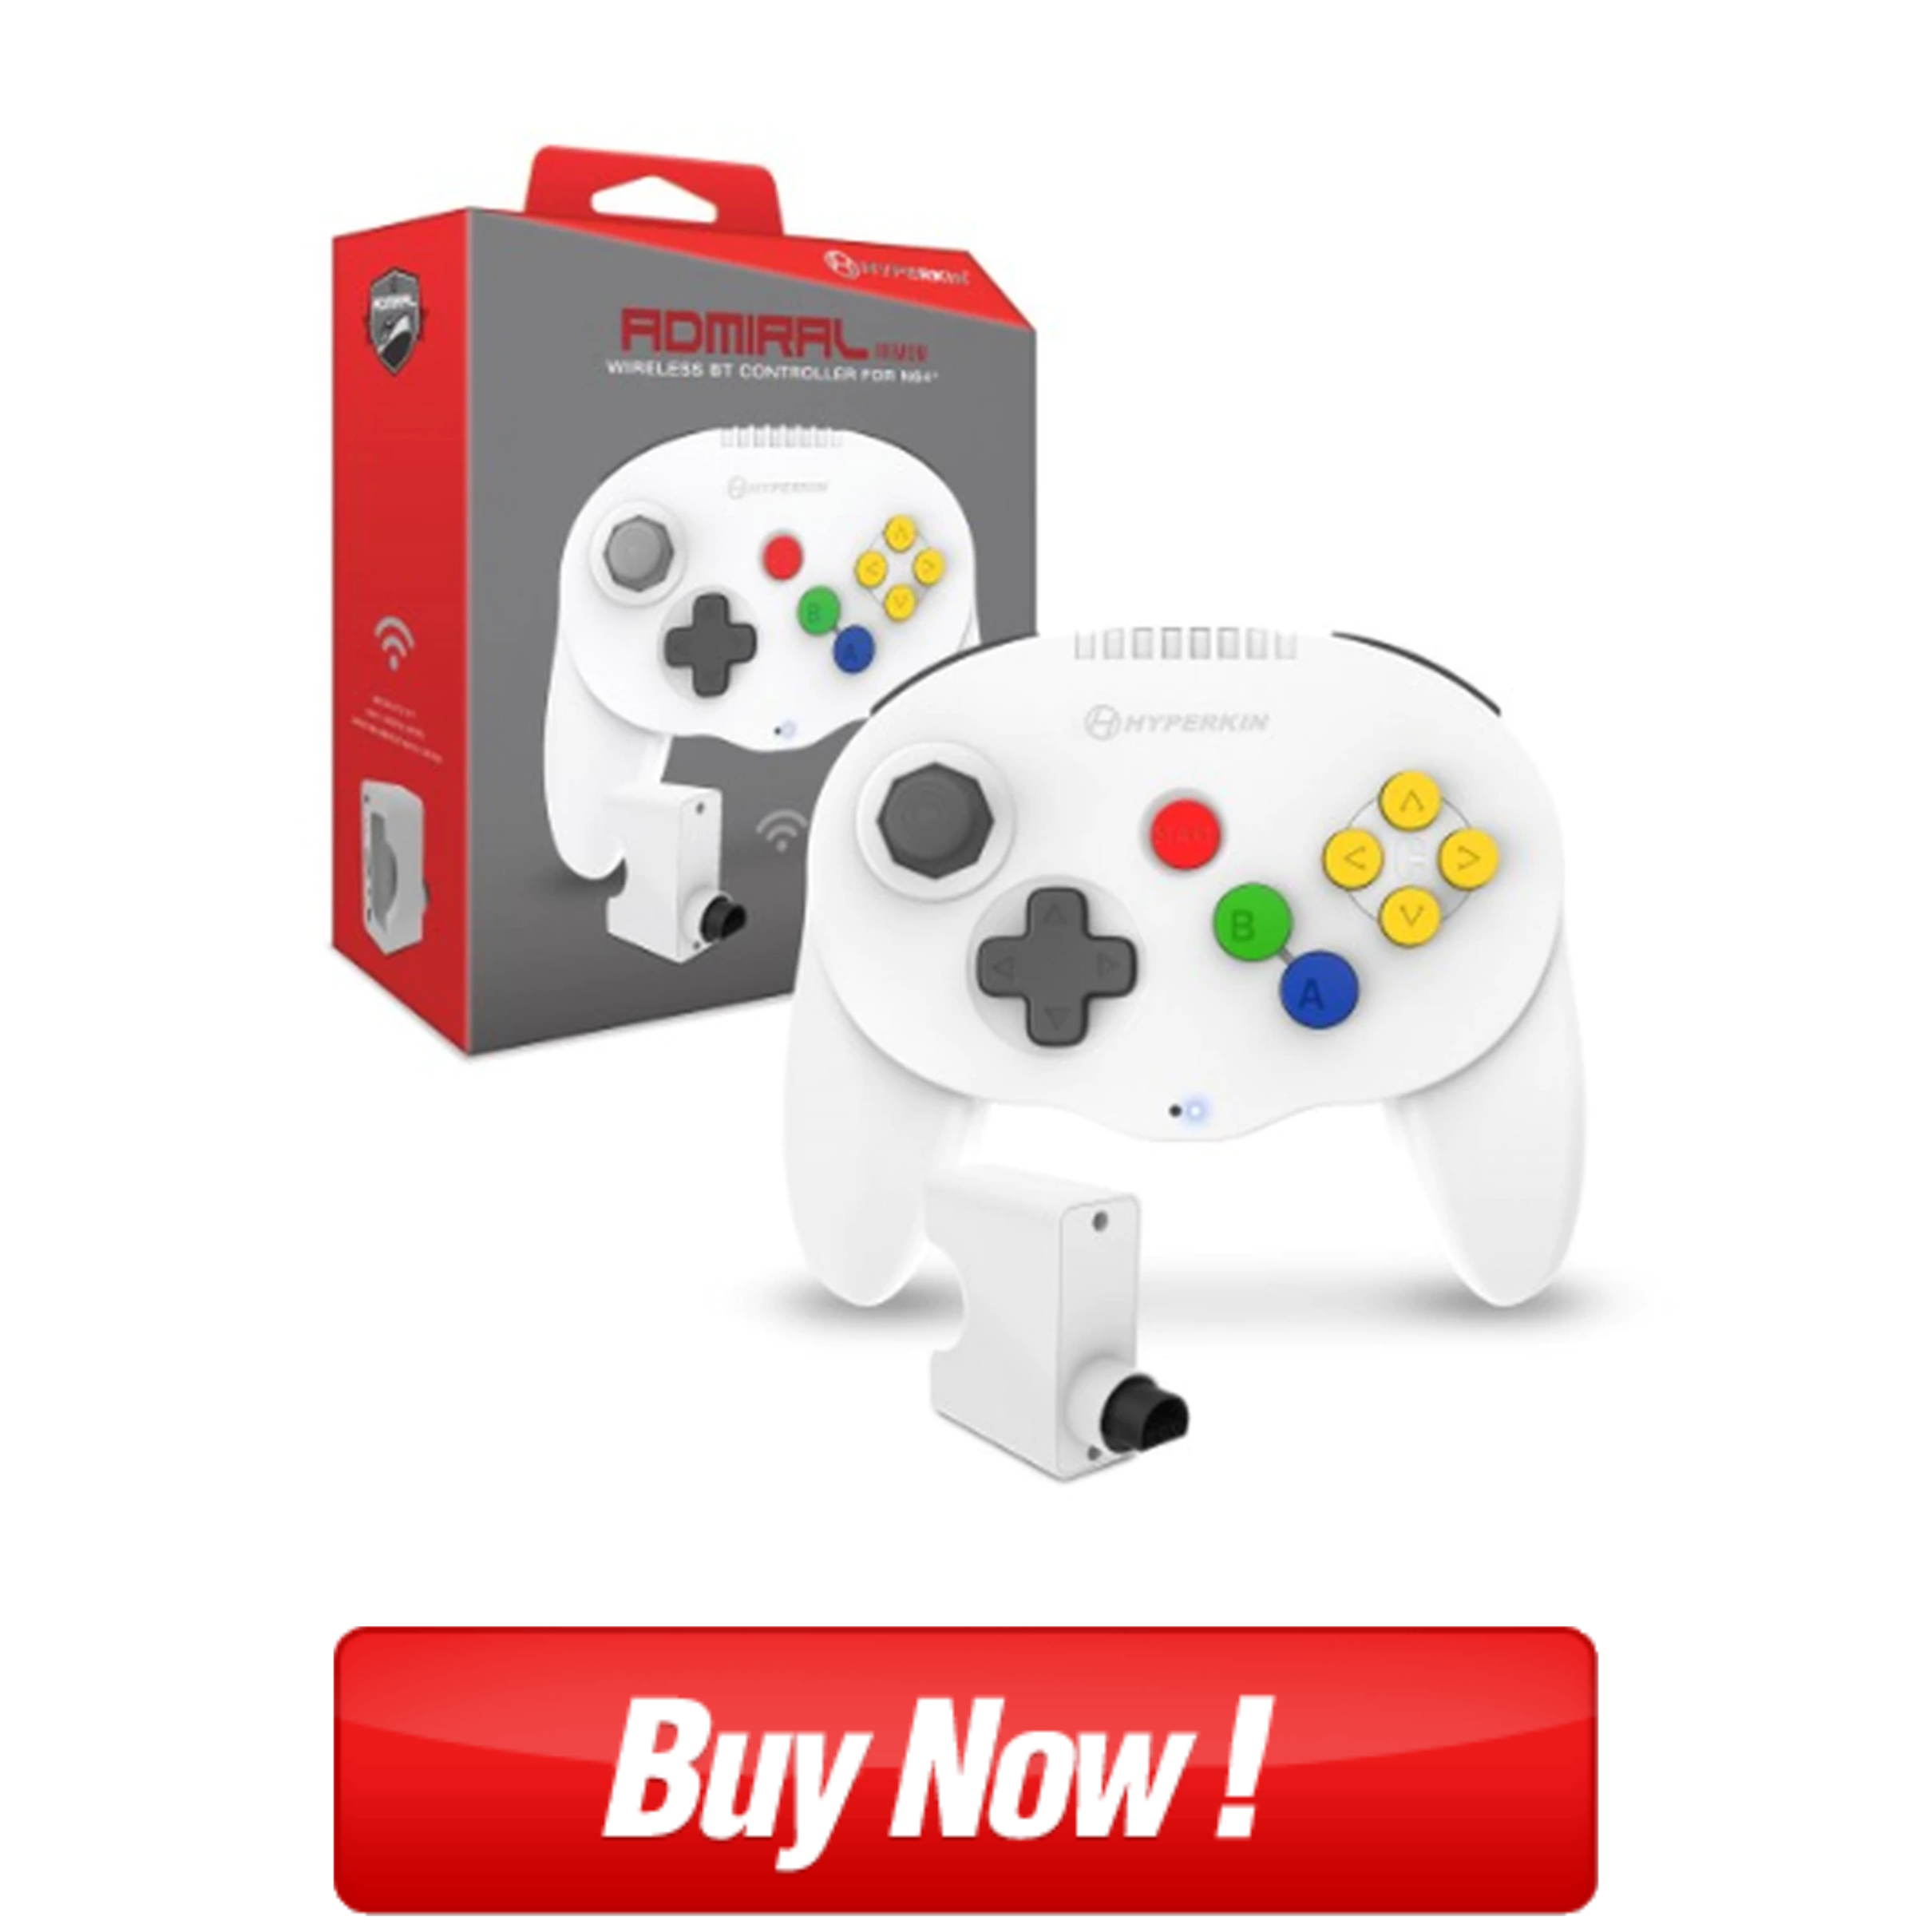 Take your game night to the next level with the